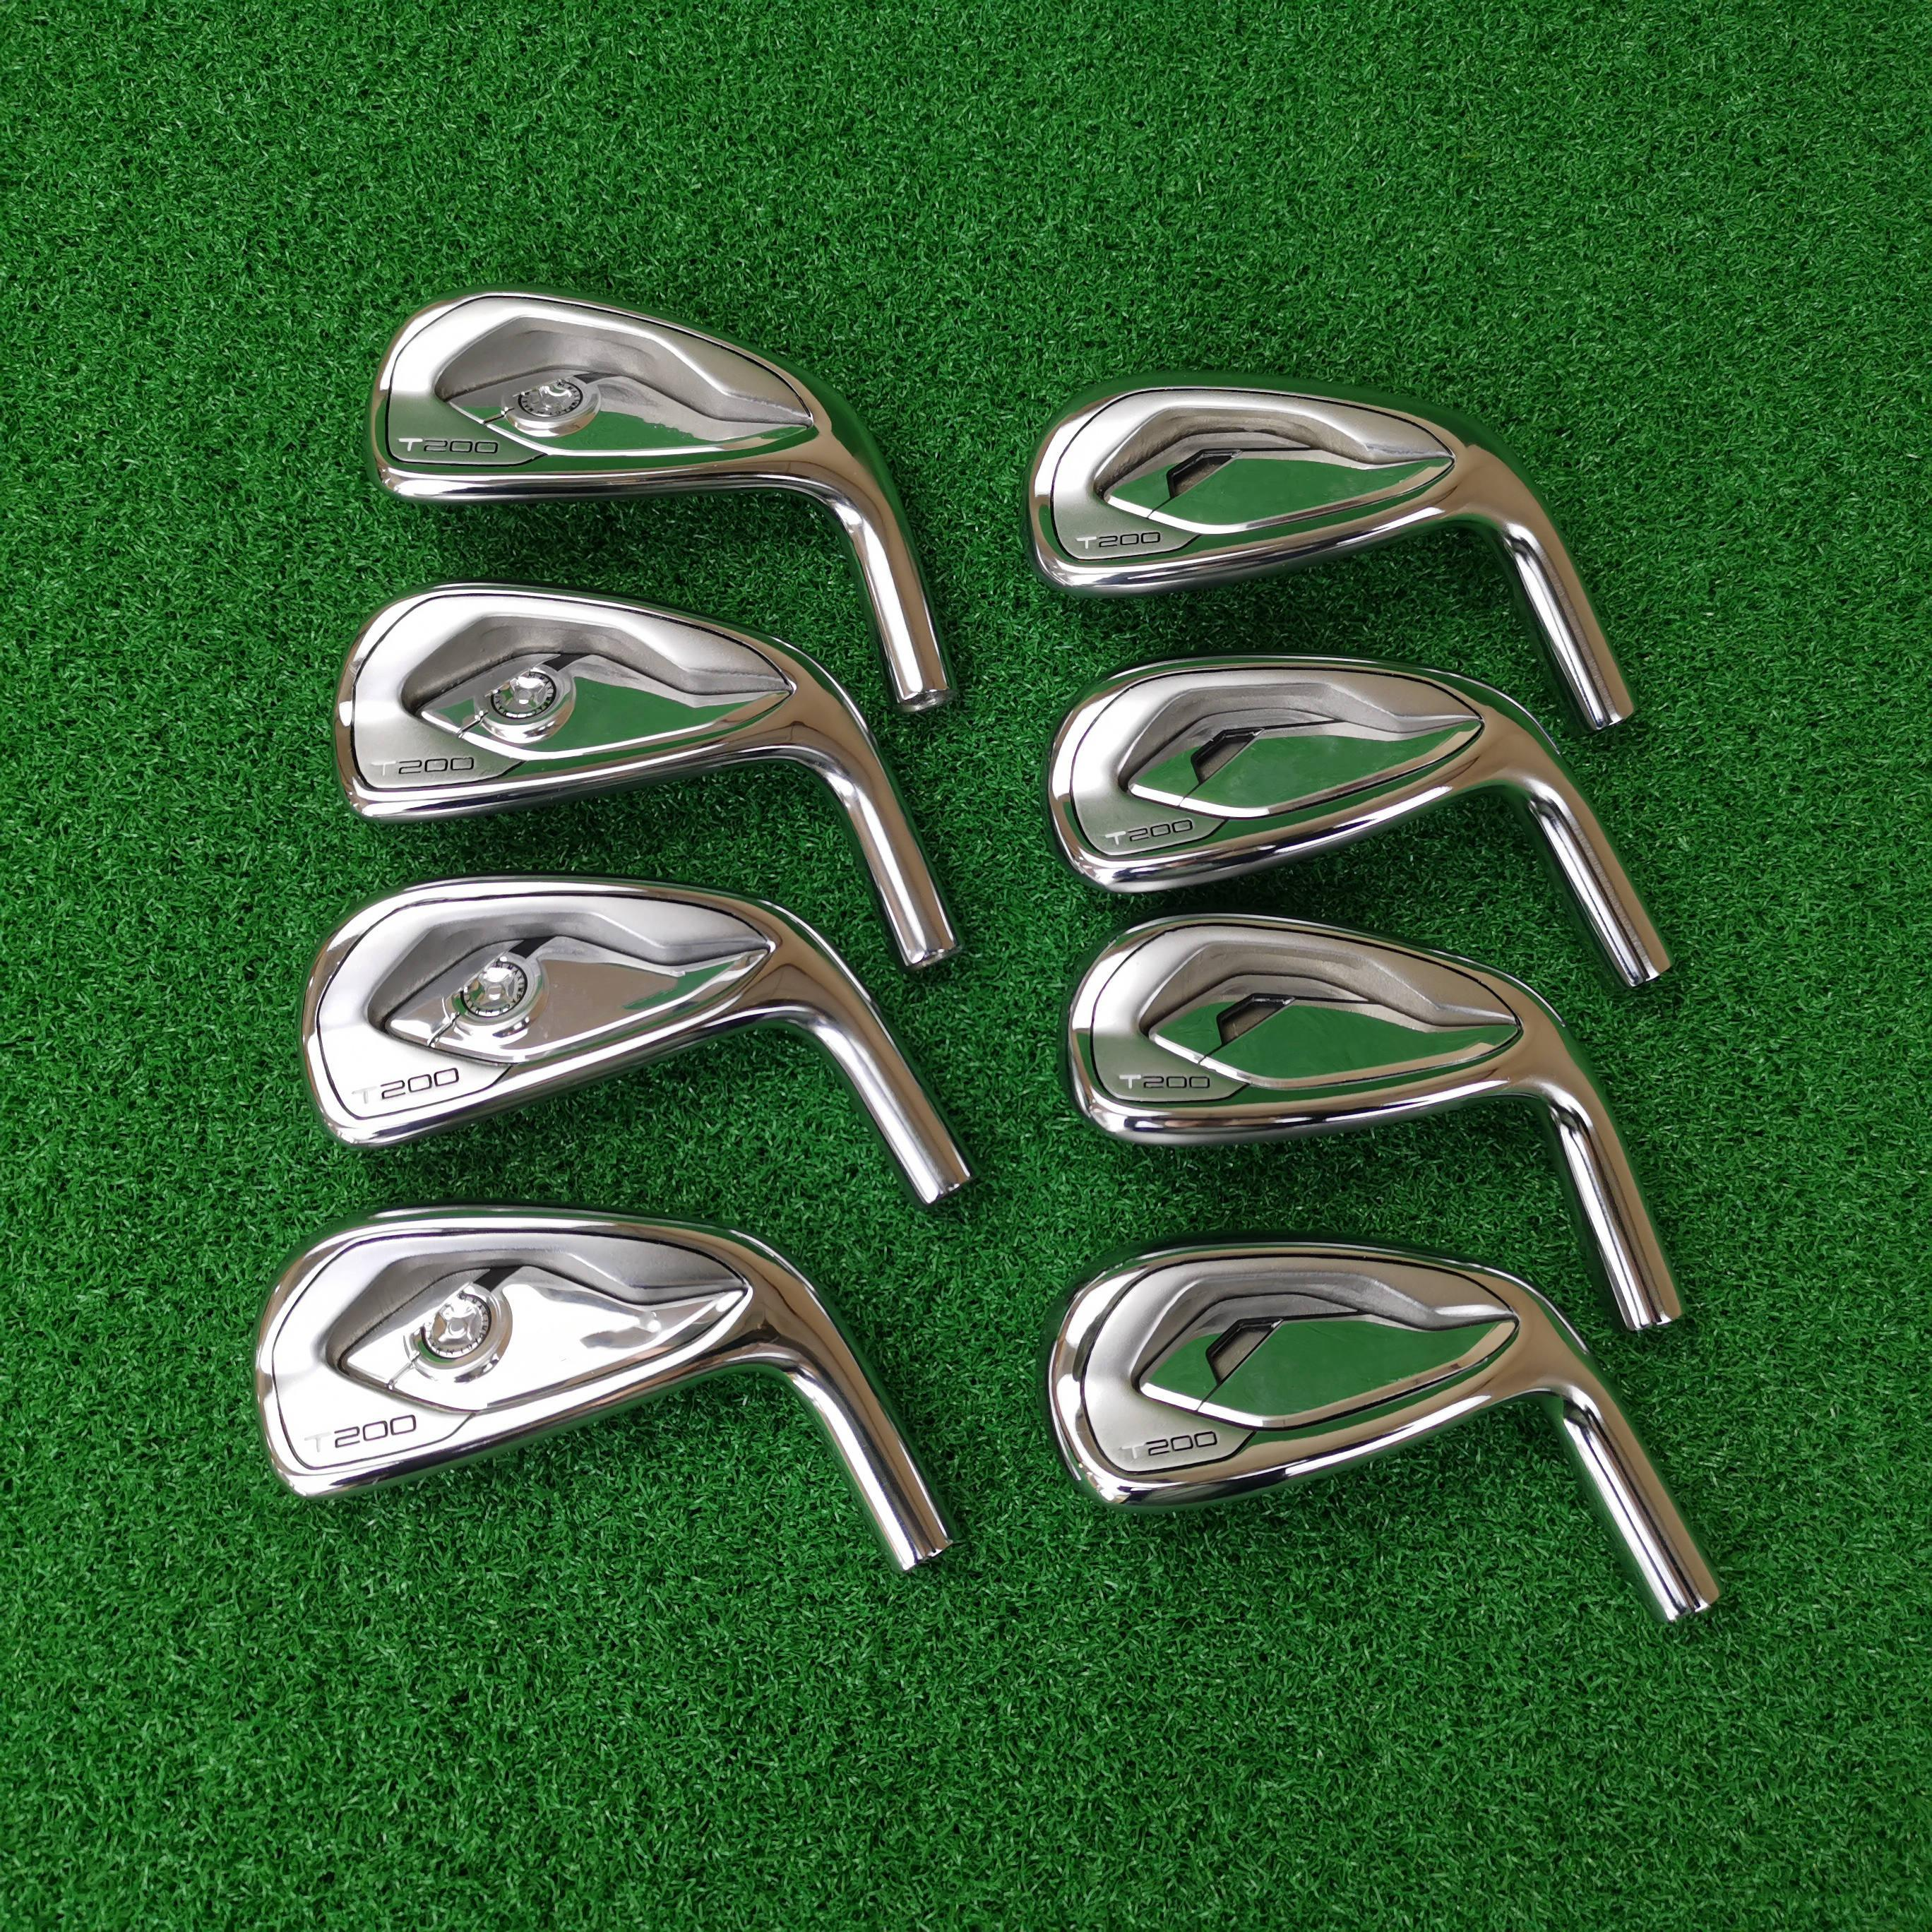 Golf Clubs T200 Irons Precise Distance Golf Forged Iron 4-9P A Set Of 7 Pieces R / S Send Headcover Free Shiping